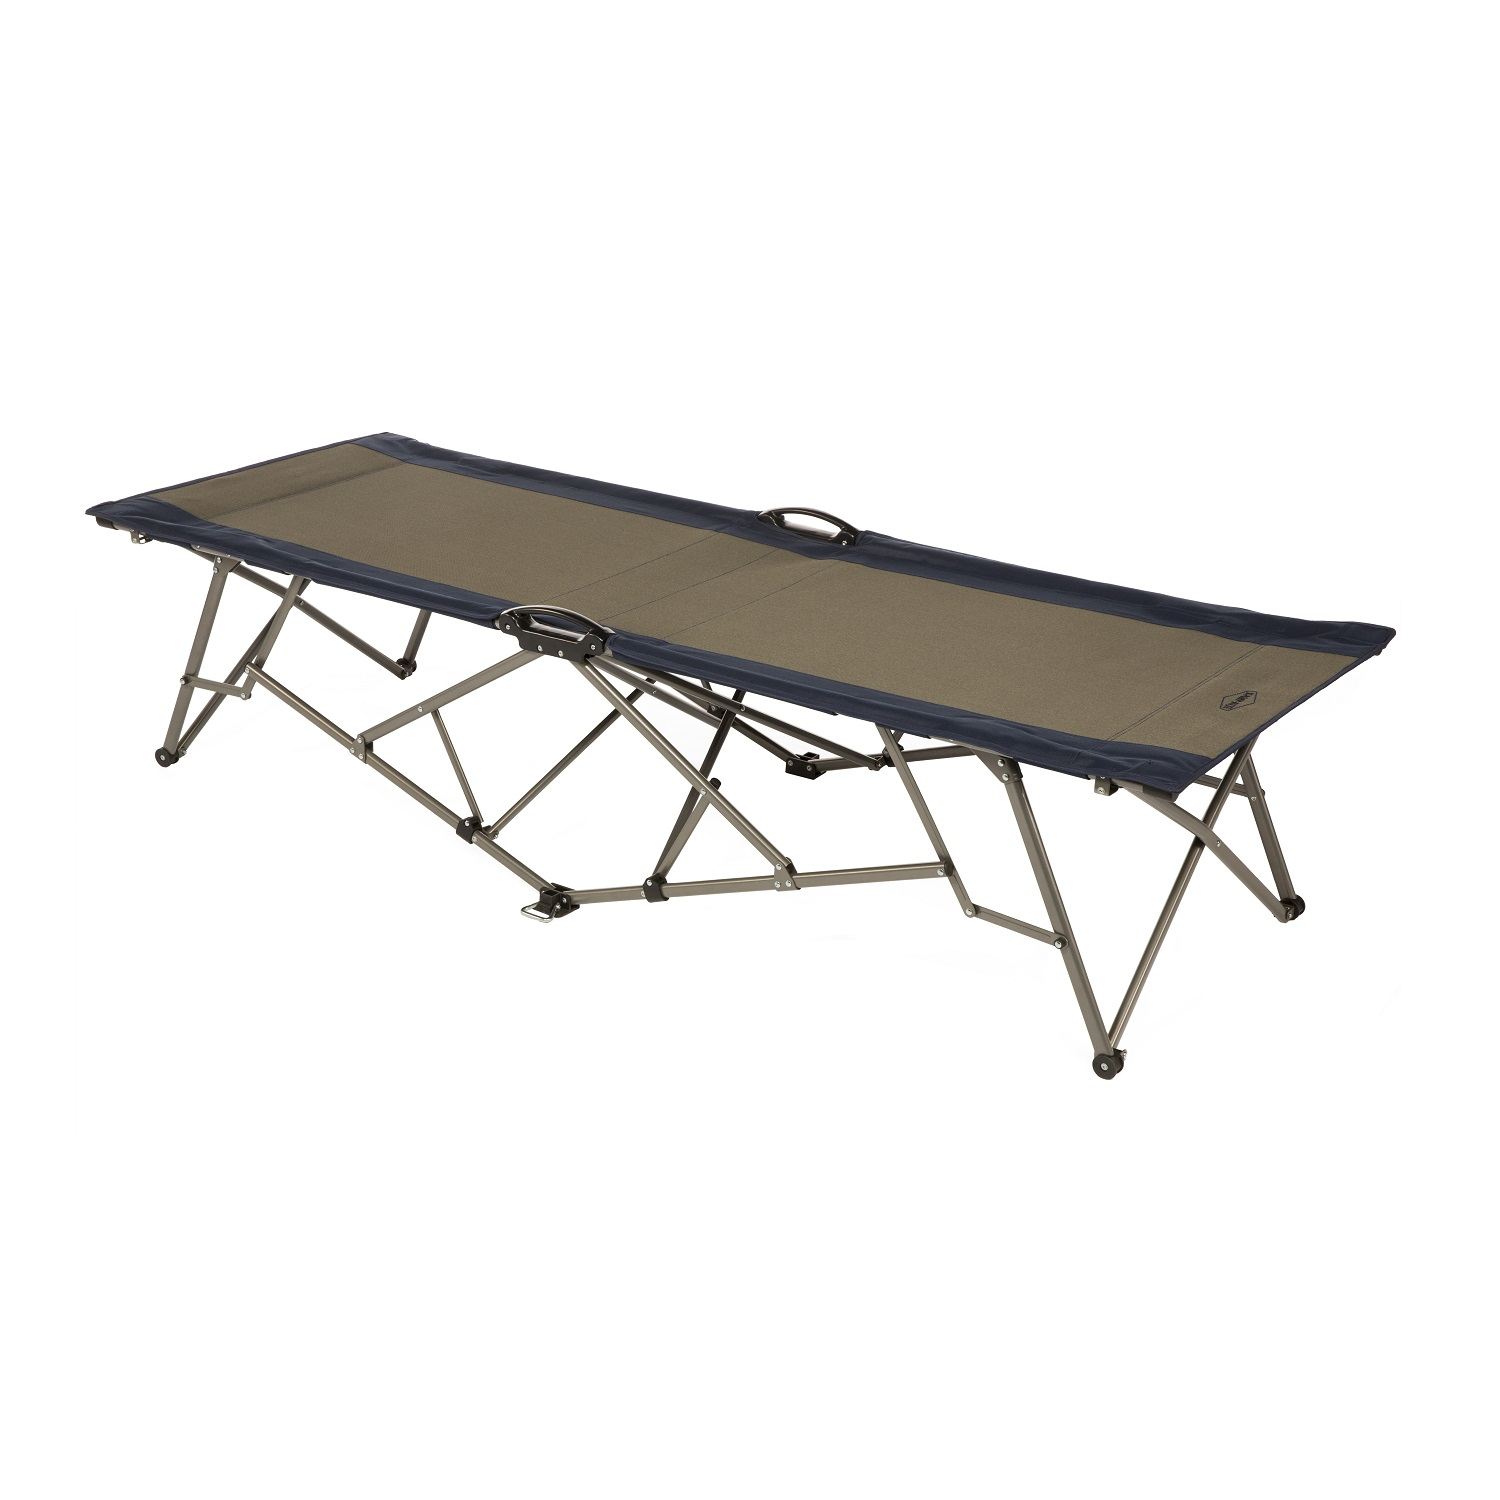 Kamp-Rite Easy Fold Cot with Carry Bag